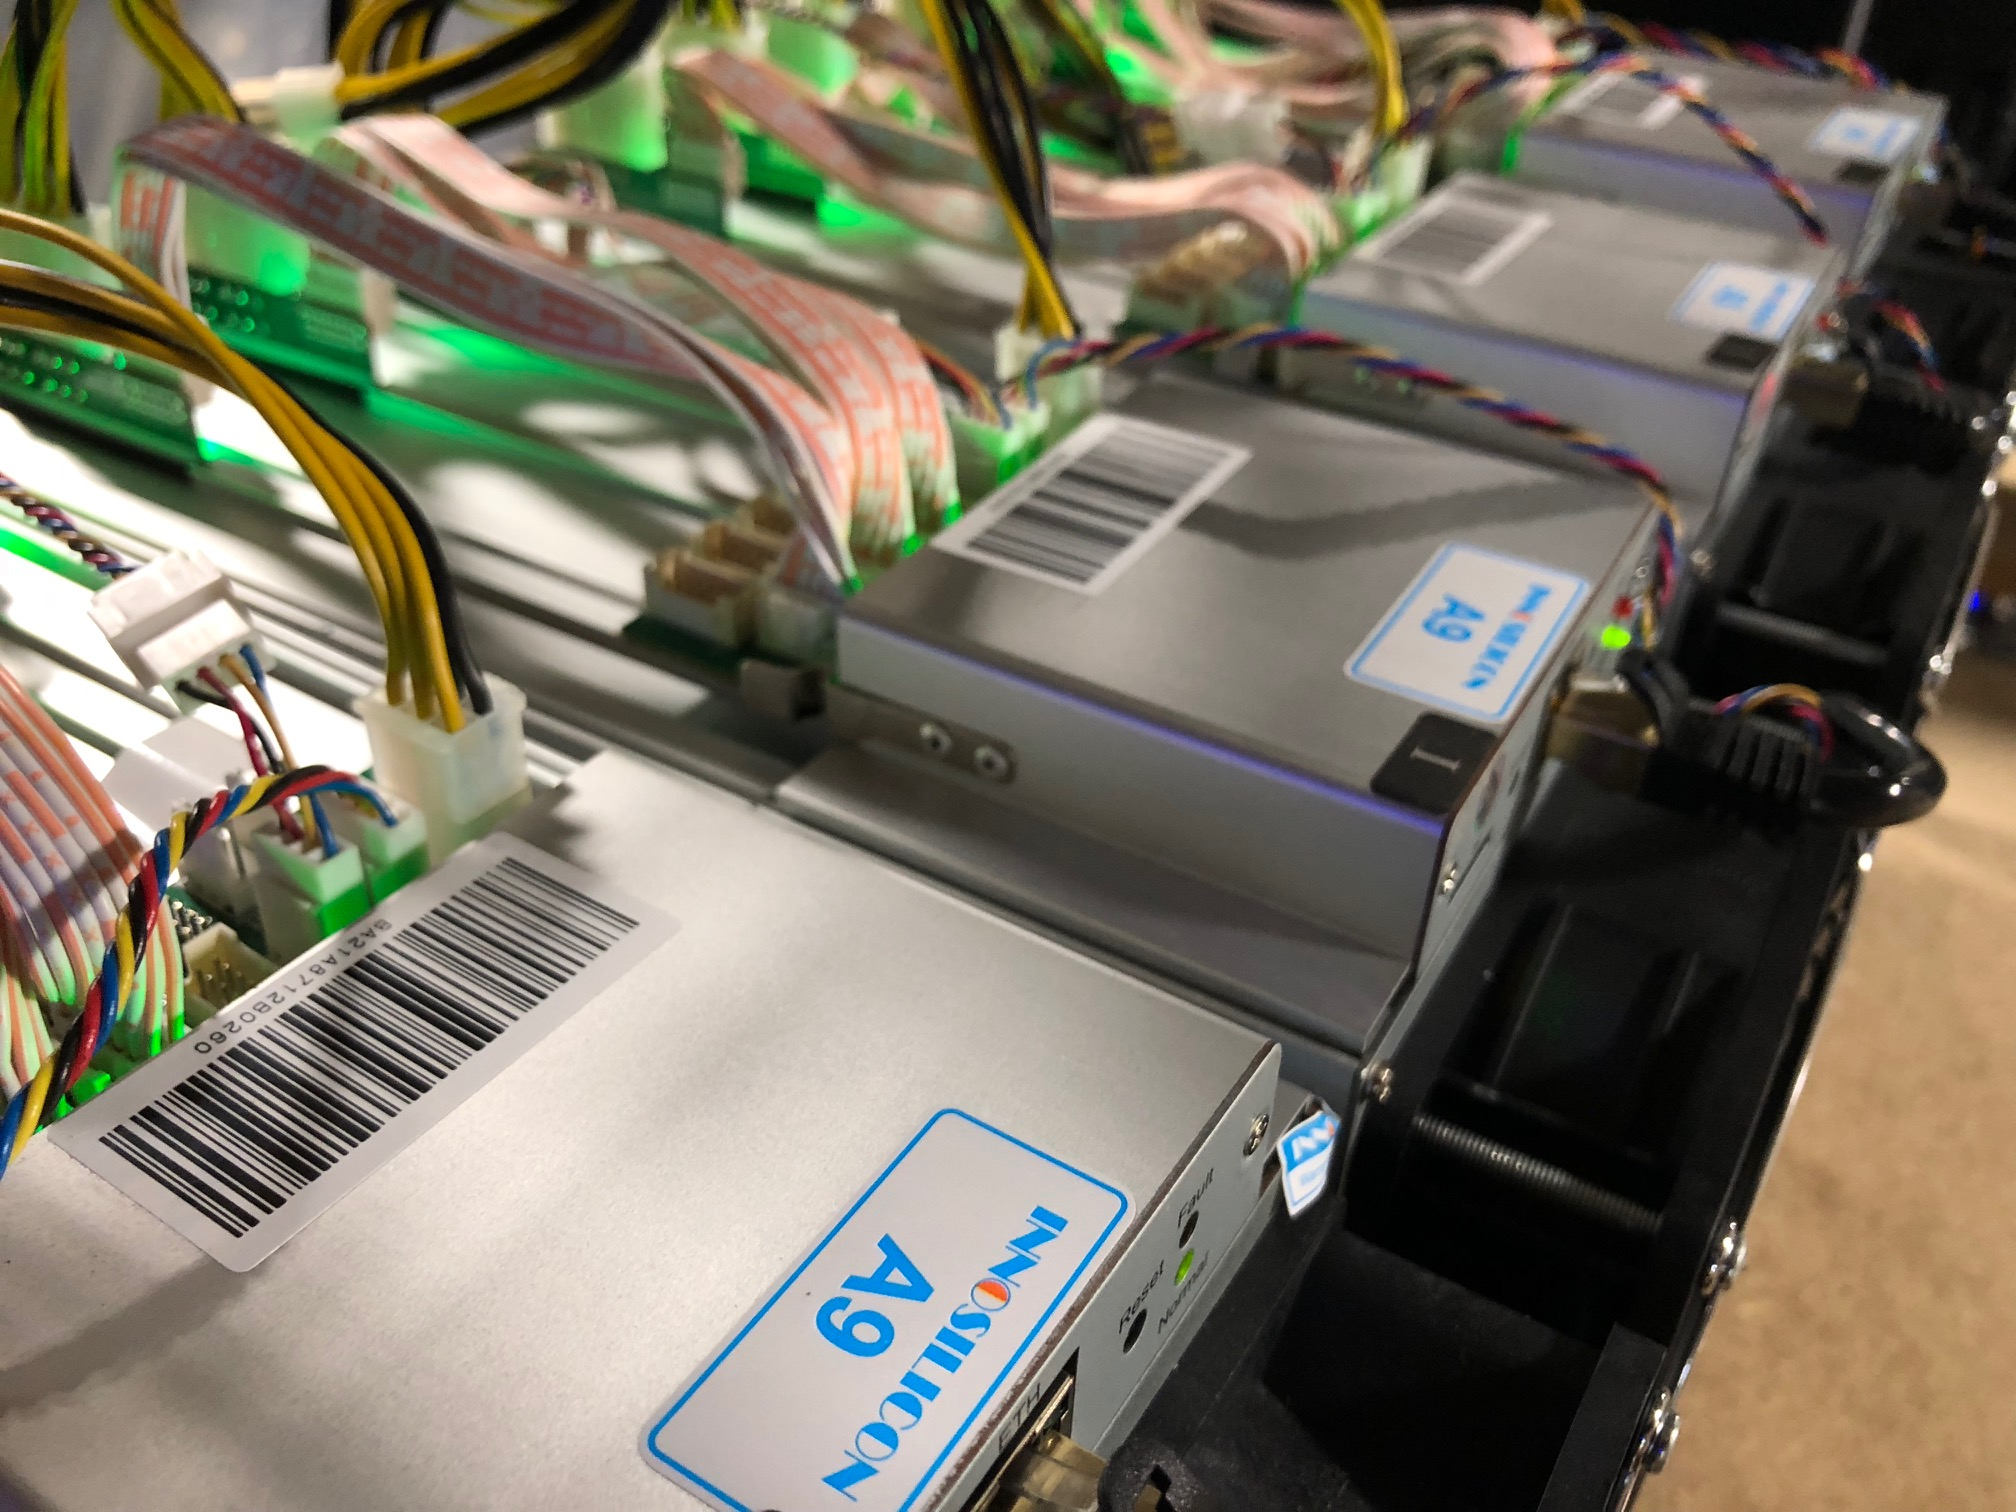 Terms of Host - Power: Dedicated BreakerConnection: Private computer with full remote accessDedicated network lineStatic IP for each separate ASICOptimal cooling for longevityYou may shut off your ASIC at any timeYou keep 100% of the profits